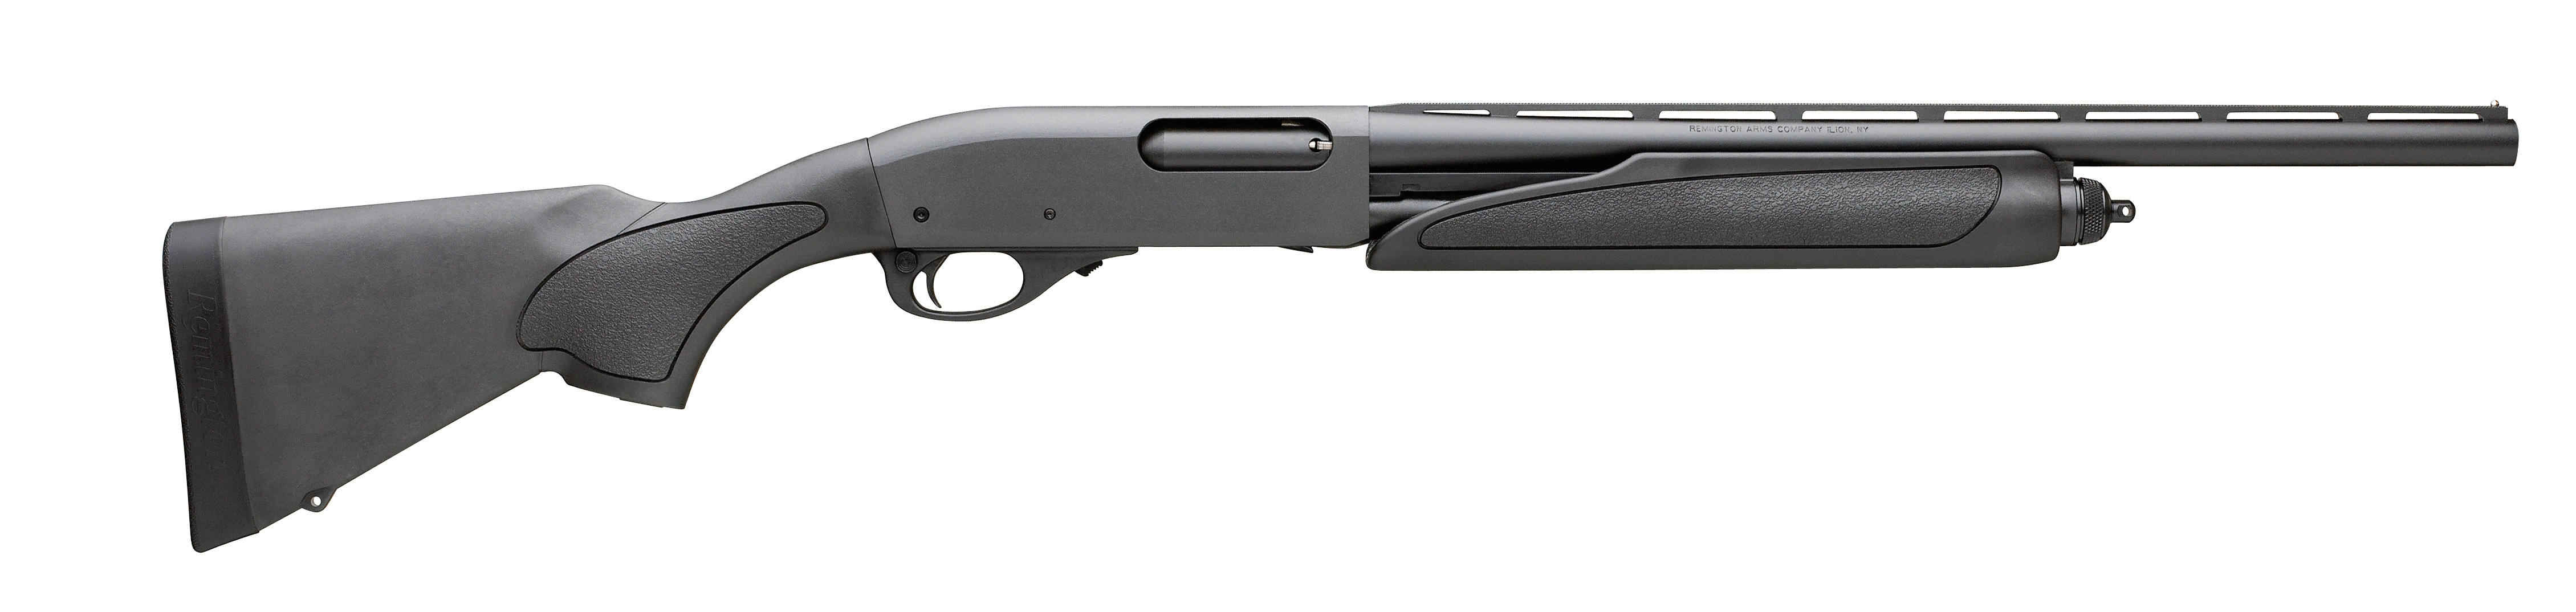 "Remington 870 Express Compact 20/76 21"" haulikko"